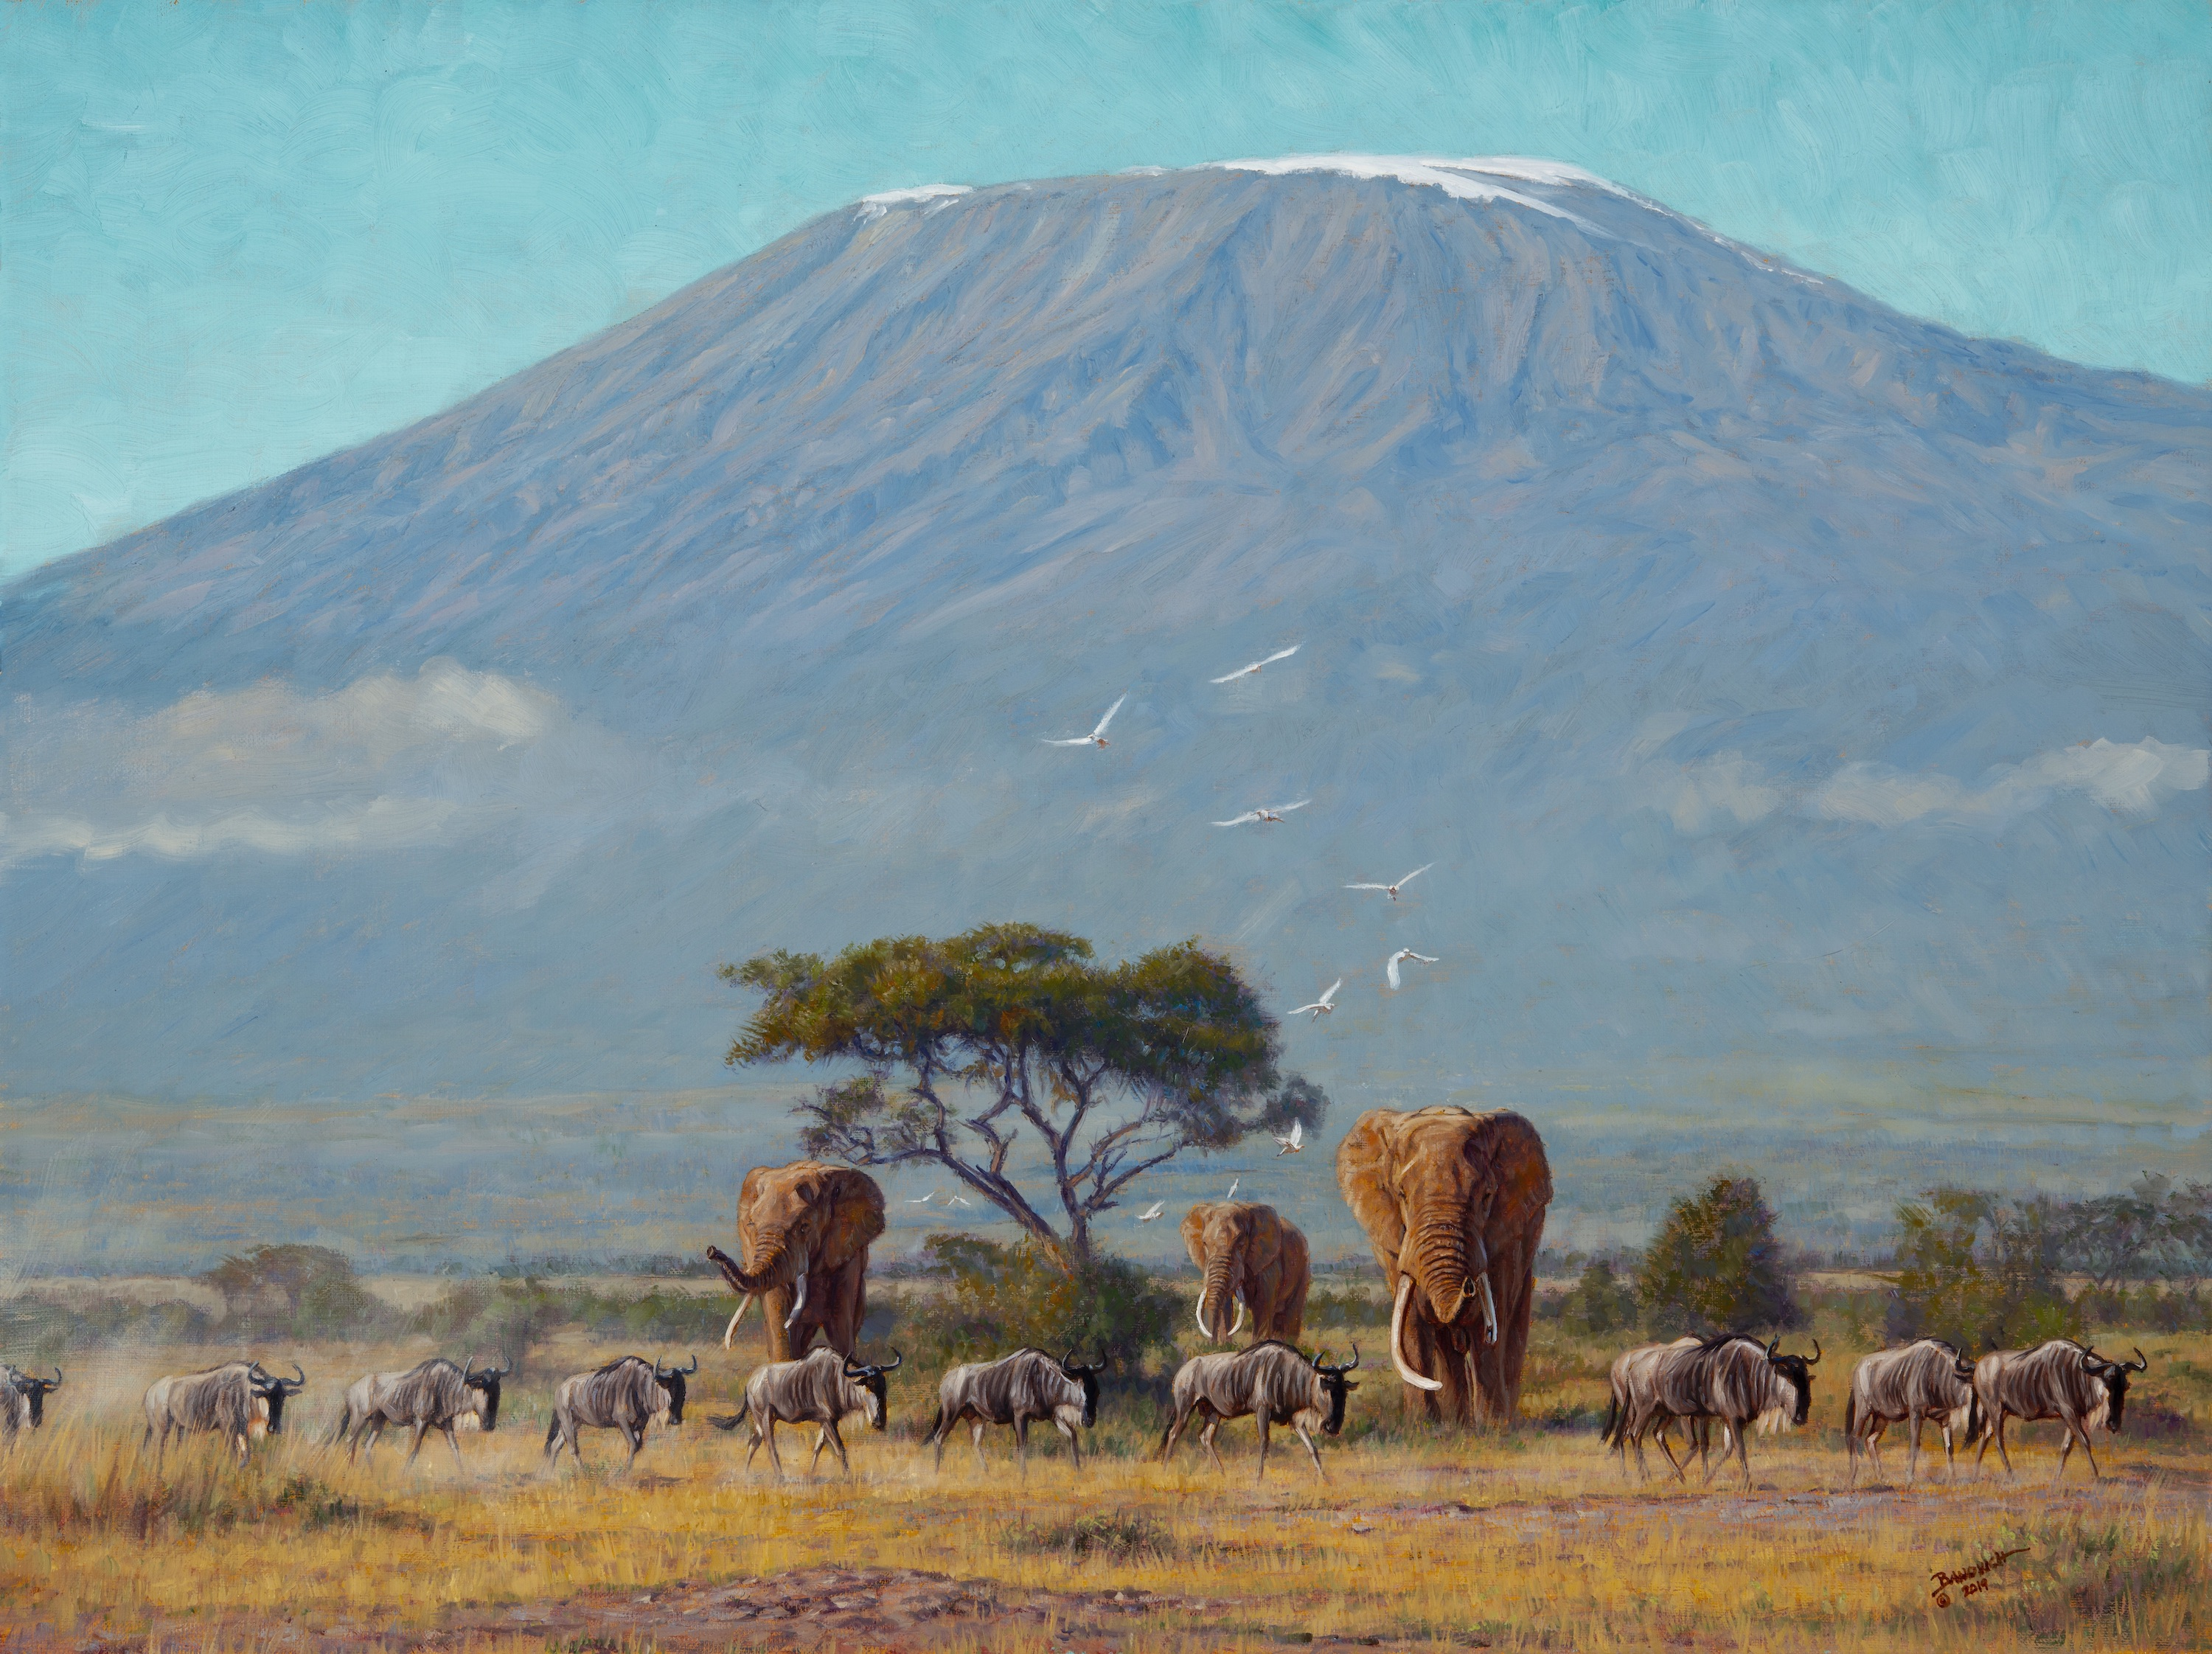 Near the Foothills of Kilimanjaro